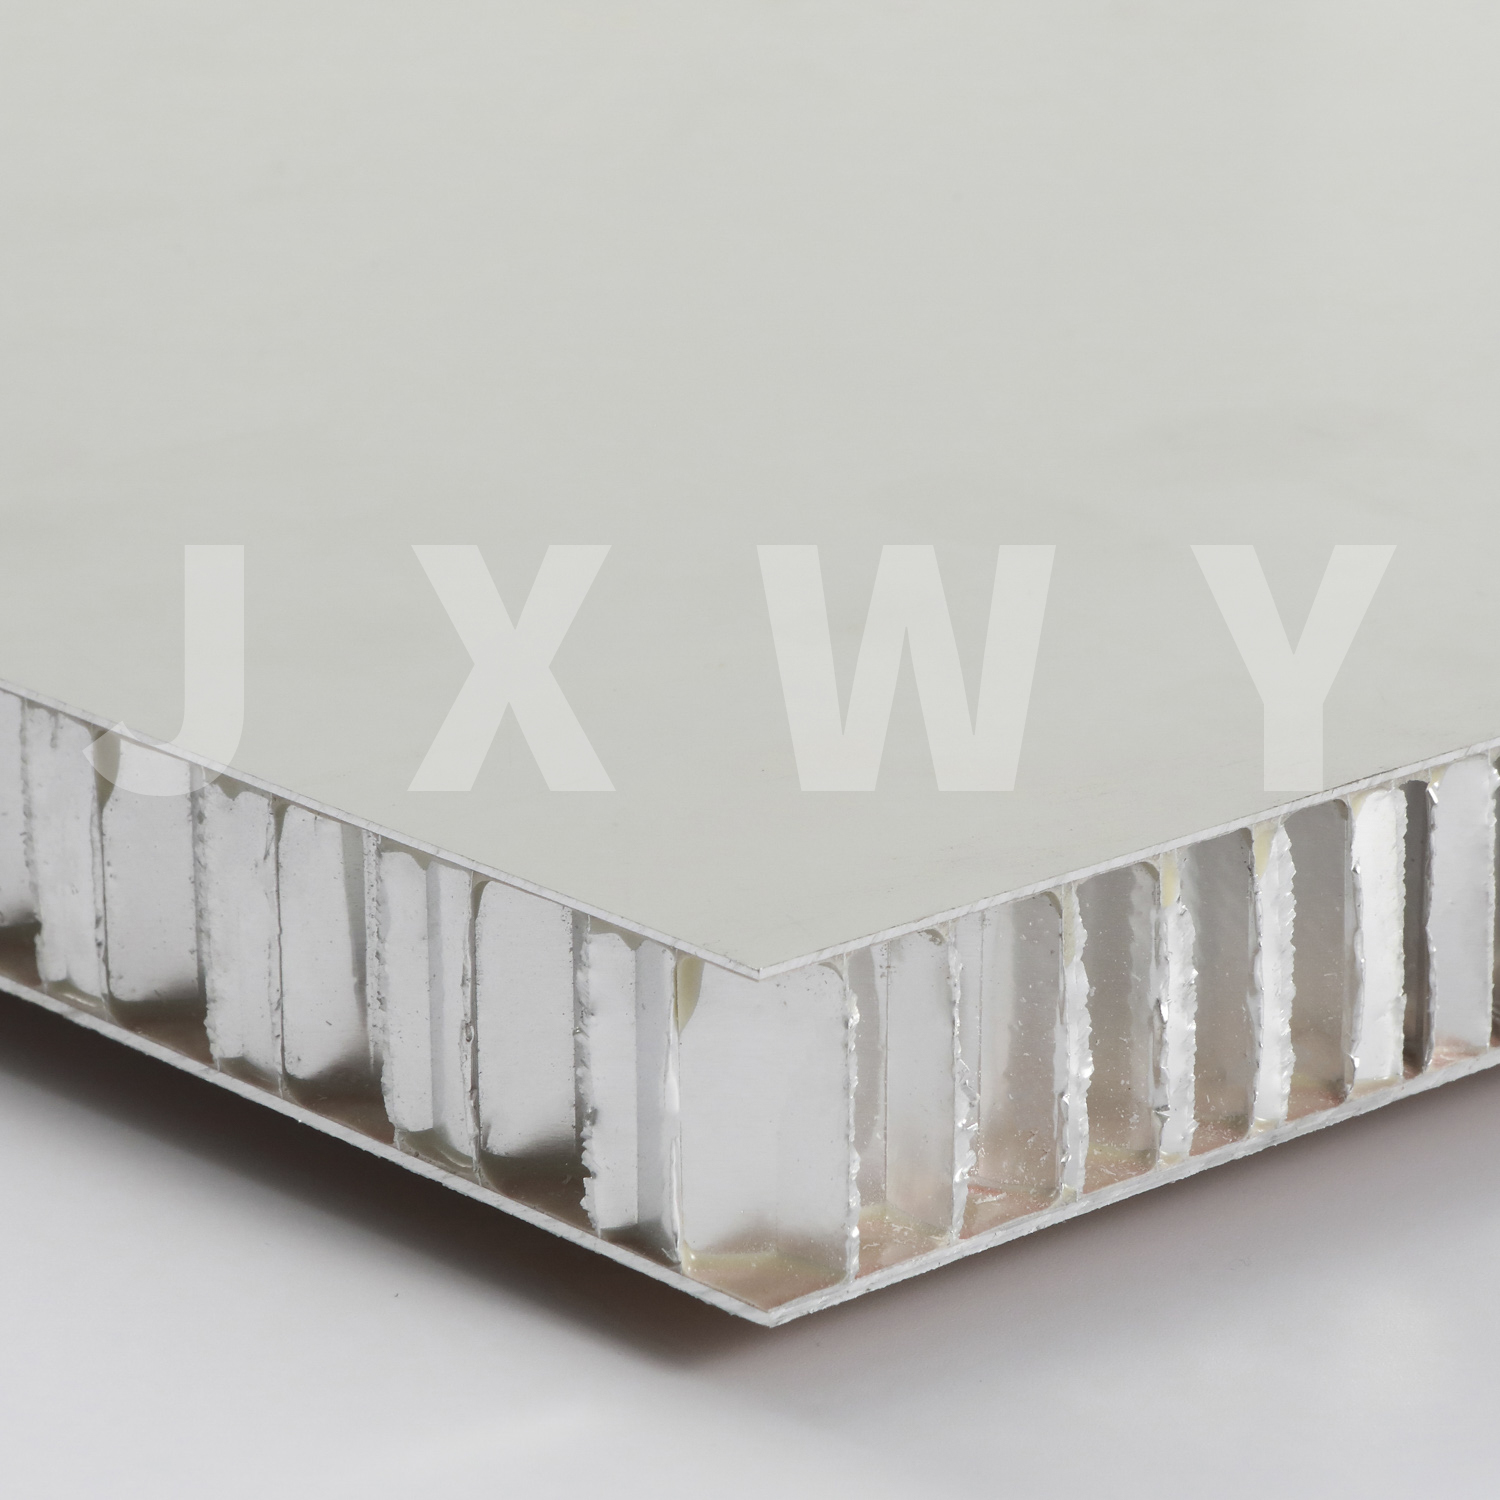 Chinese Supplier Curtain Wall Aluminum Honeycomb Panels for Exterior Wall Panel